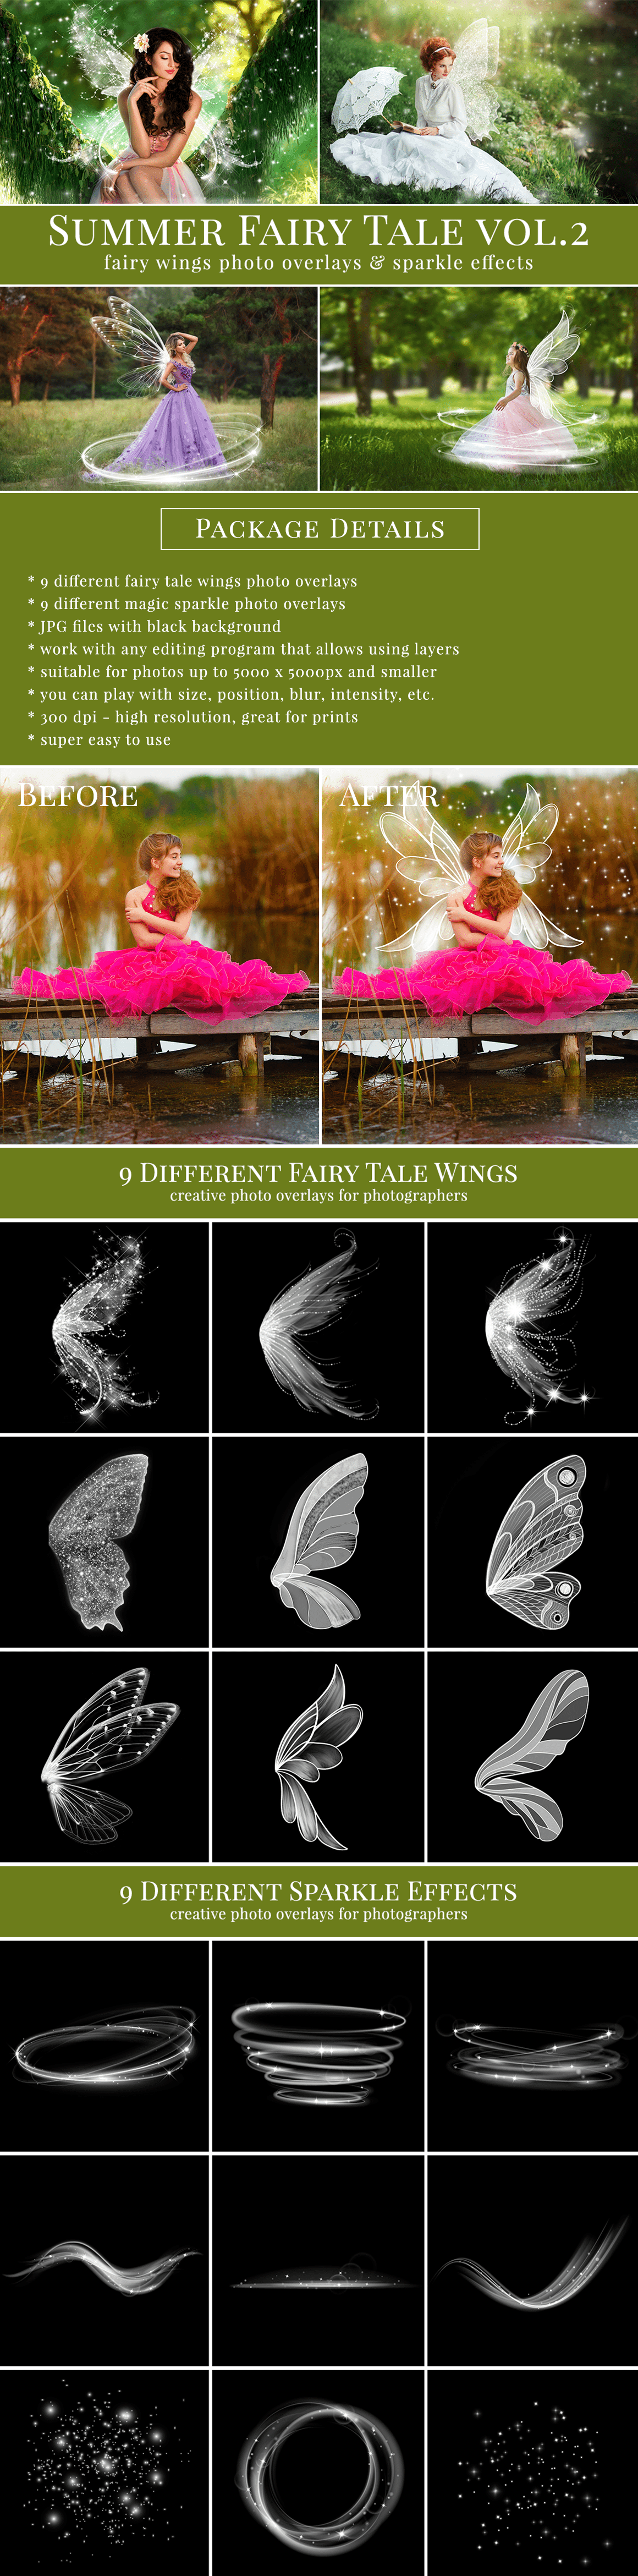 Creative fairy wings photo overlays with sparkle effects overlays. Great for mini sessions. Professional photo overlays for Photoshop, Zoner, Gimp etc. Super easy to use, very pretty result just in one minute. Photo overlays for creative photographers from Brown Leopard.